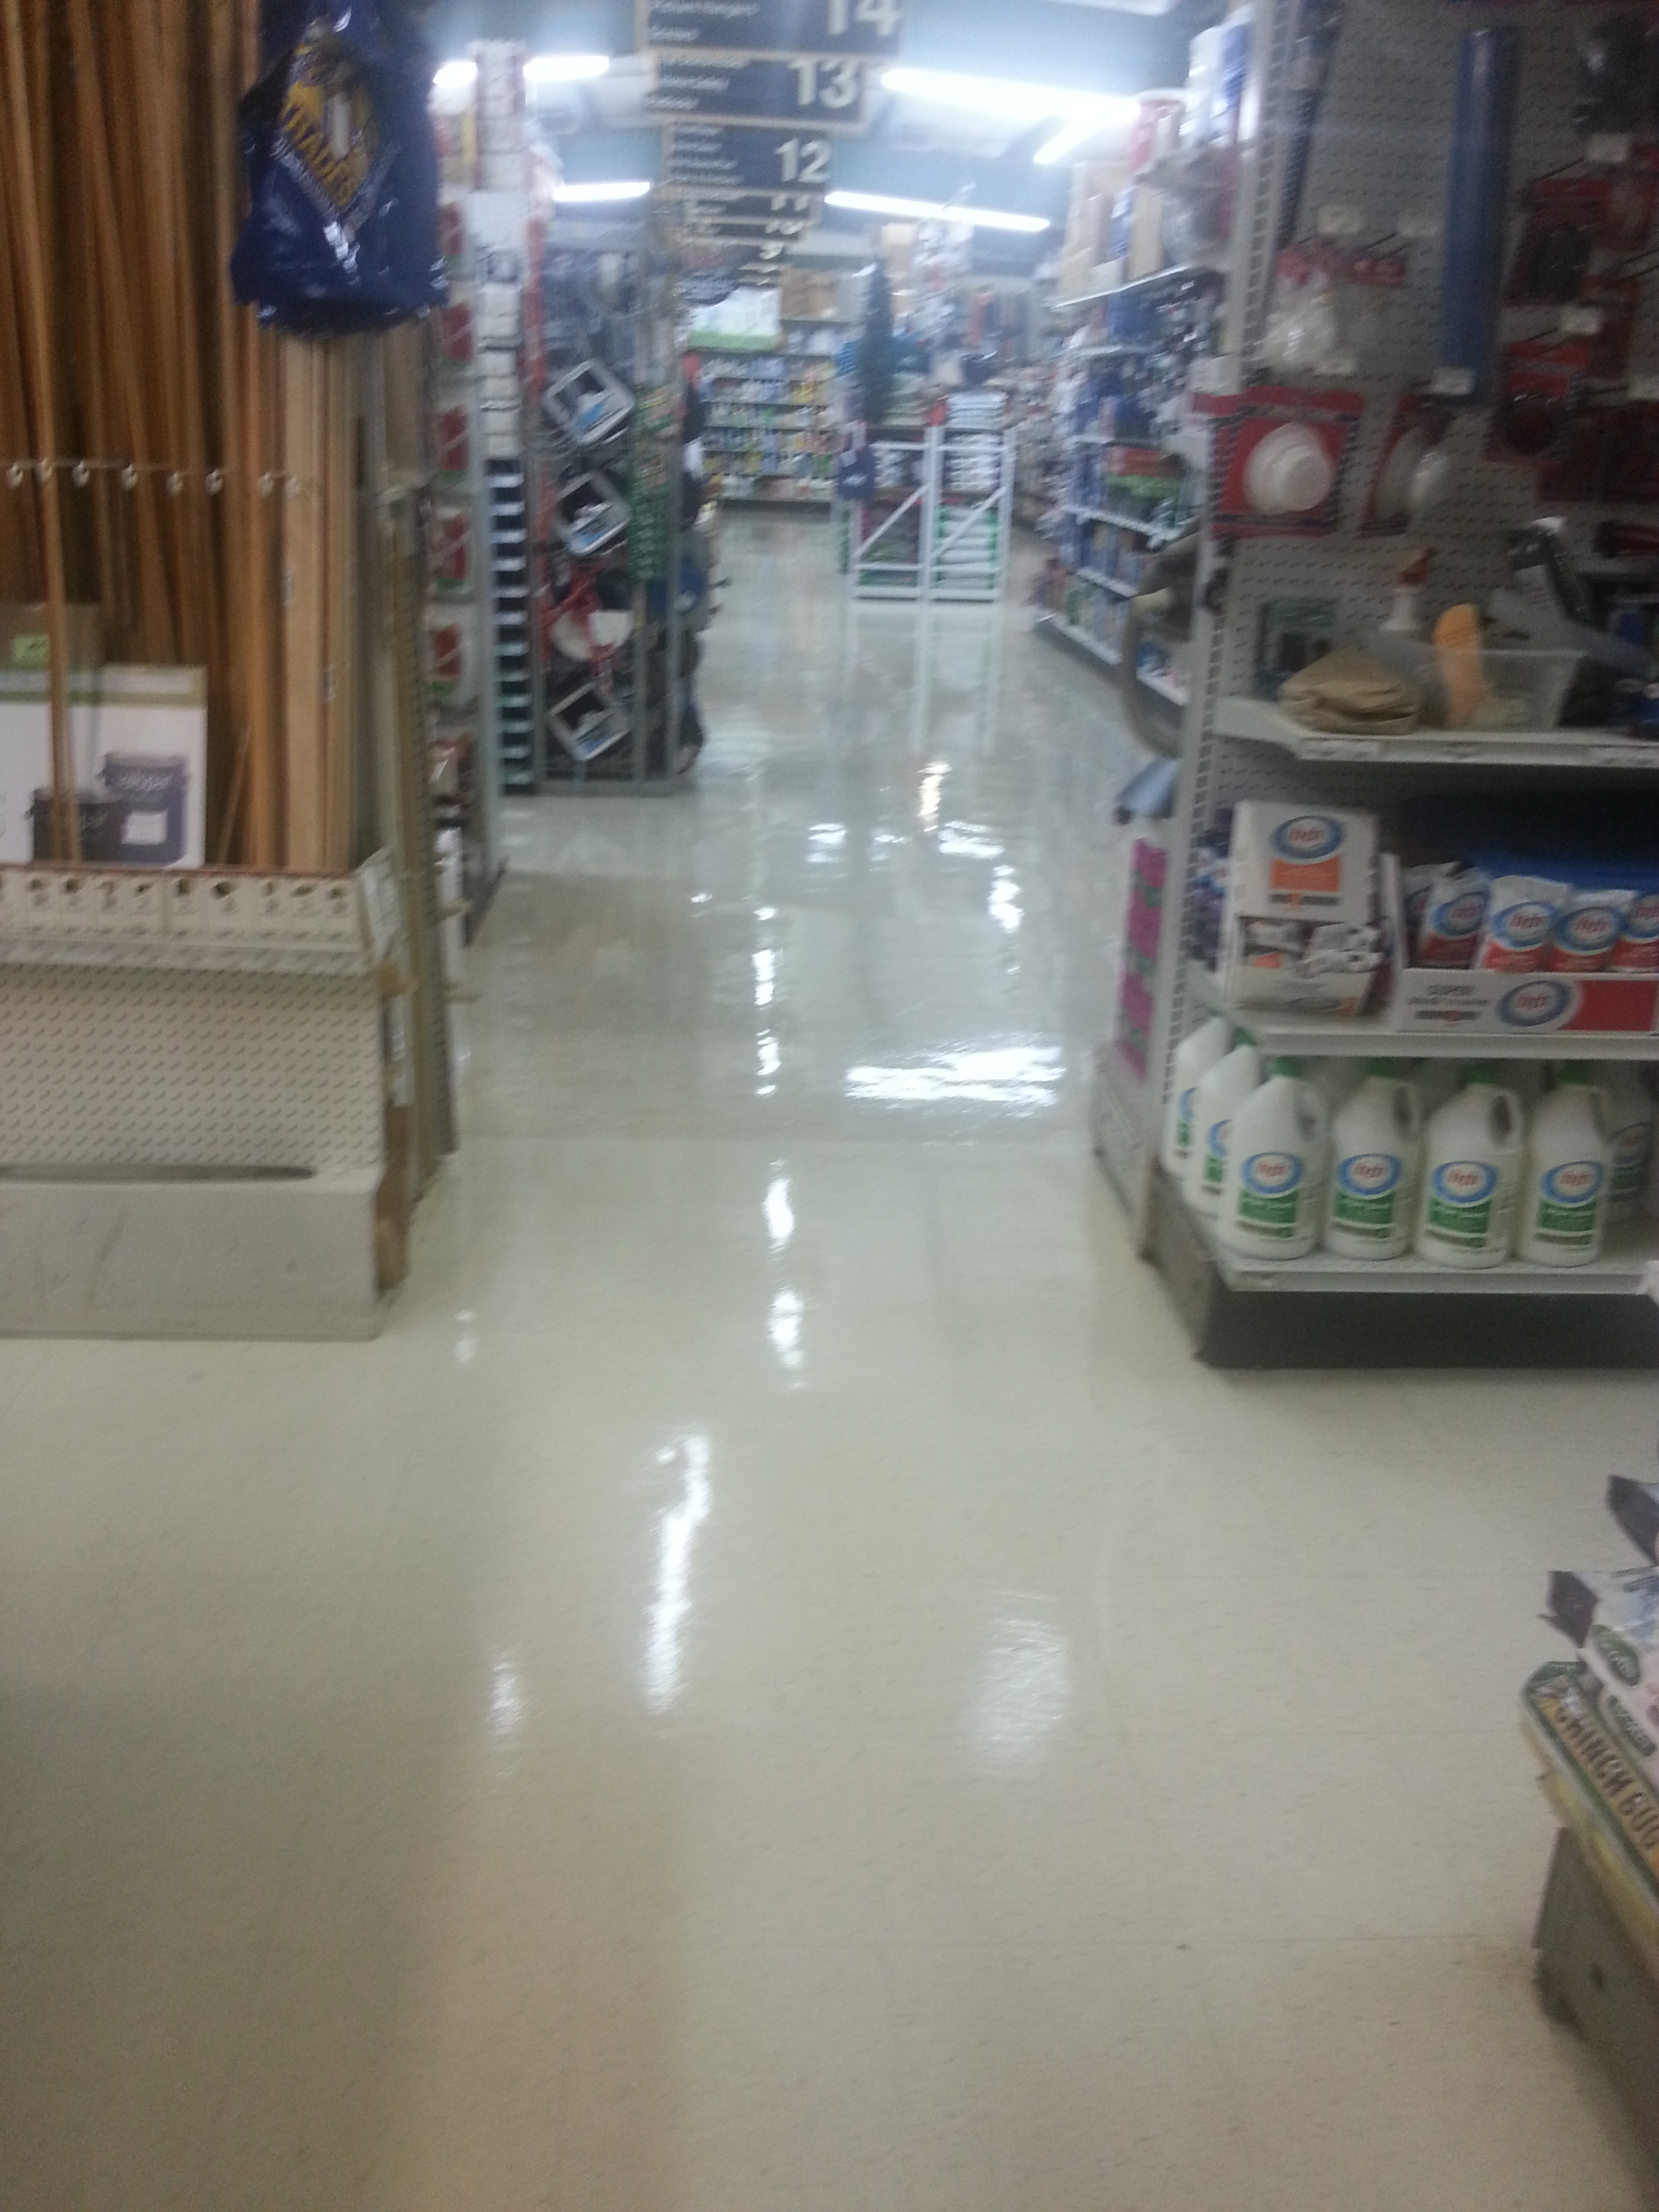 James Waugh - All Pro Janitorial, Inc. image 1